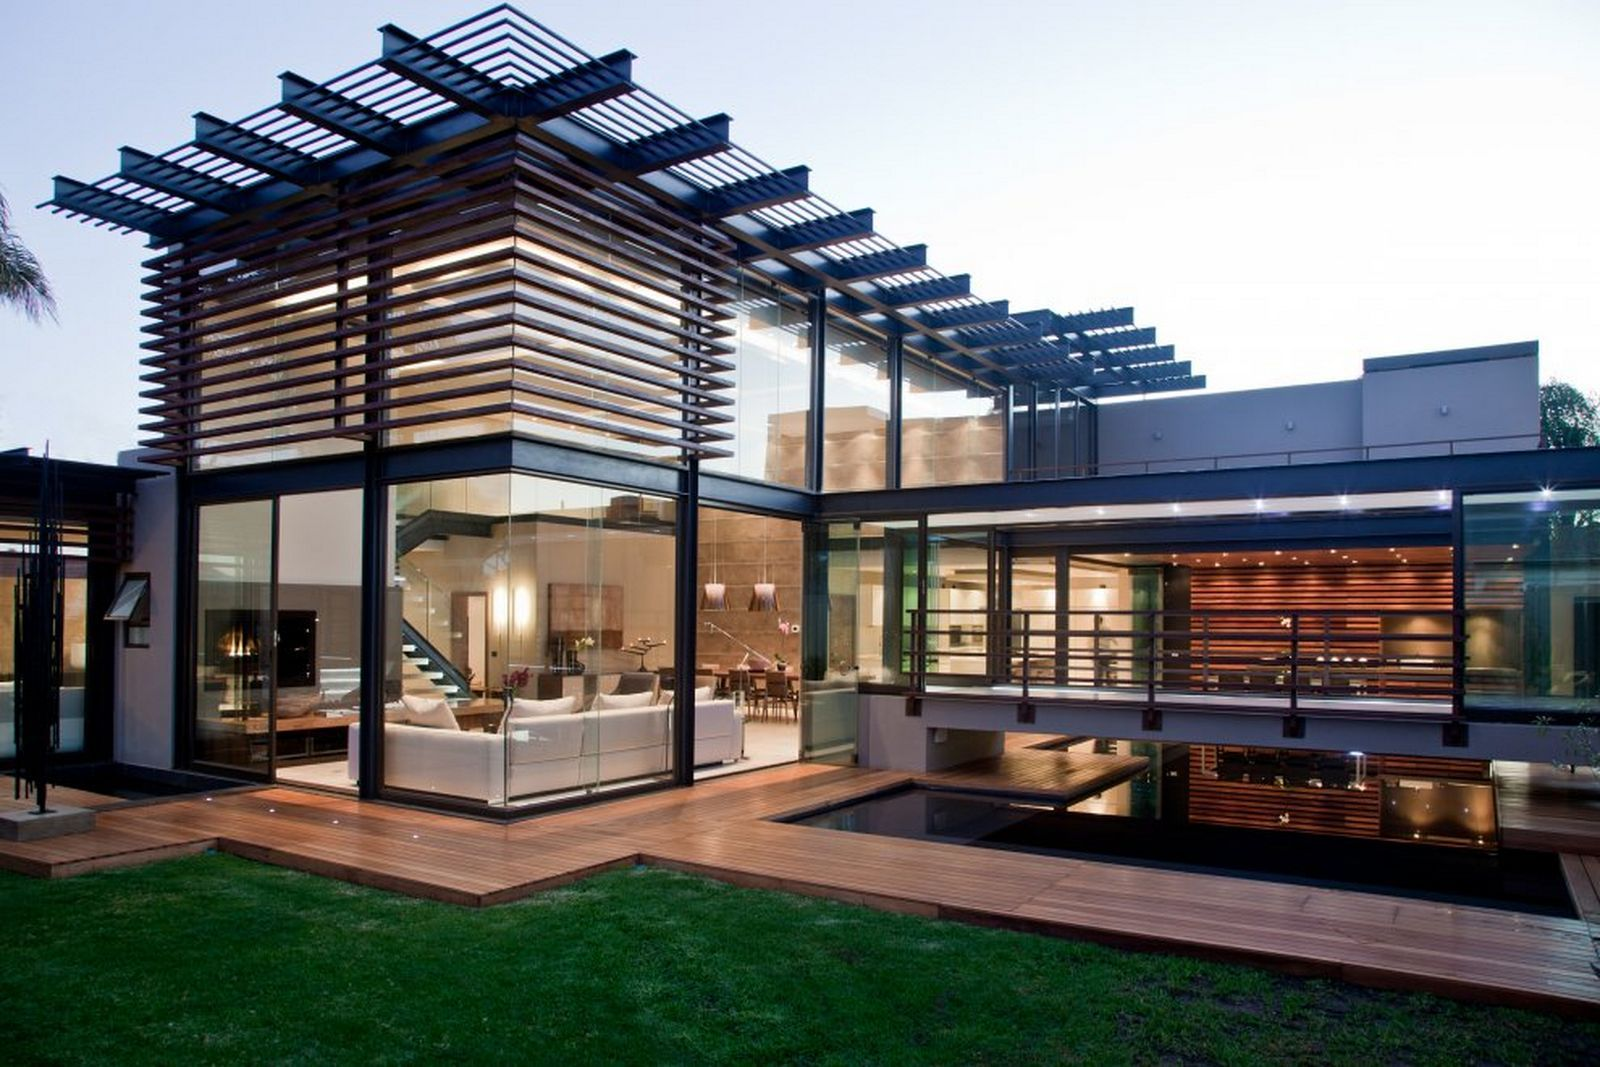 Modern design exterior house design idea of modern tropical home ideas unique exterior design